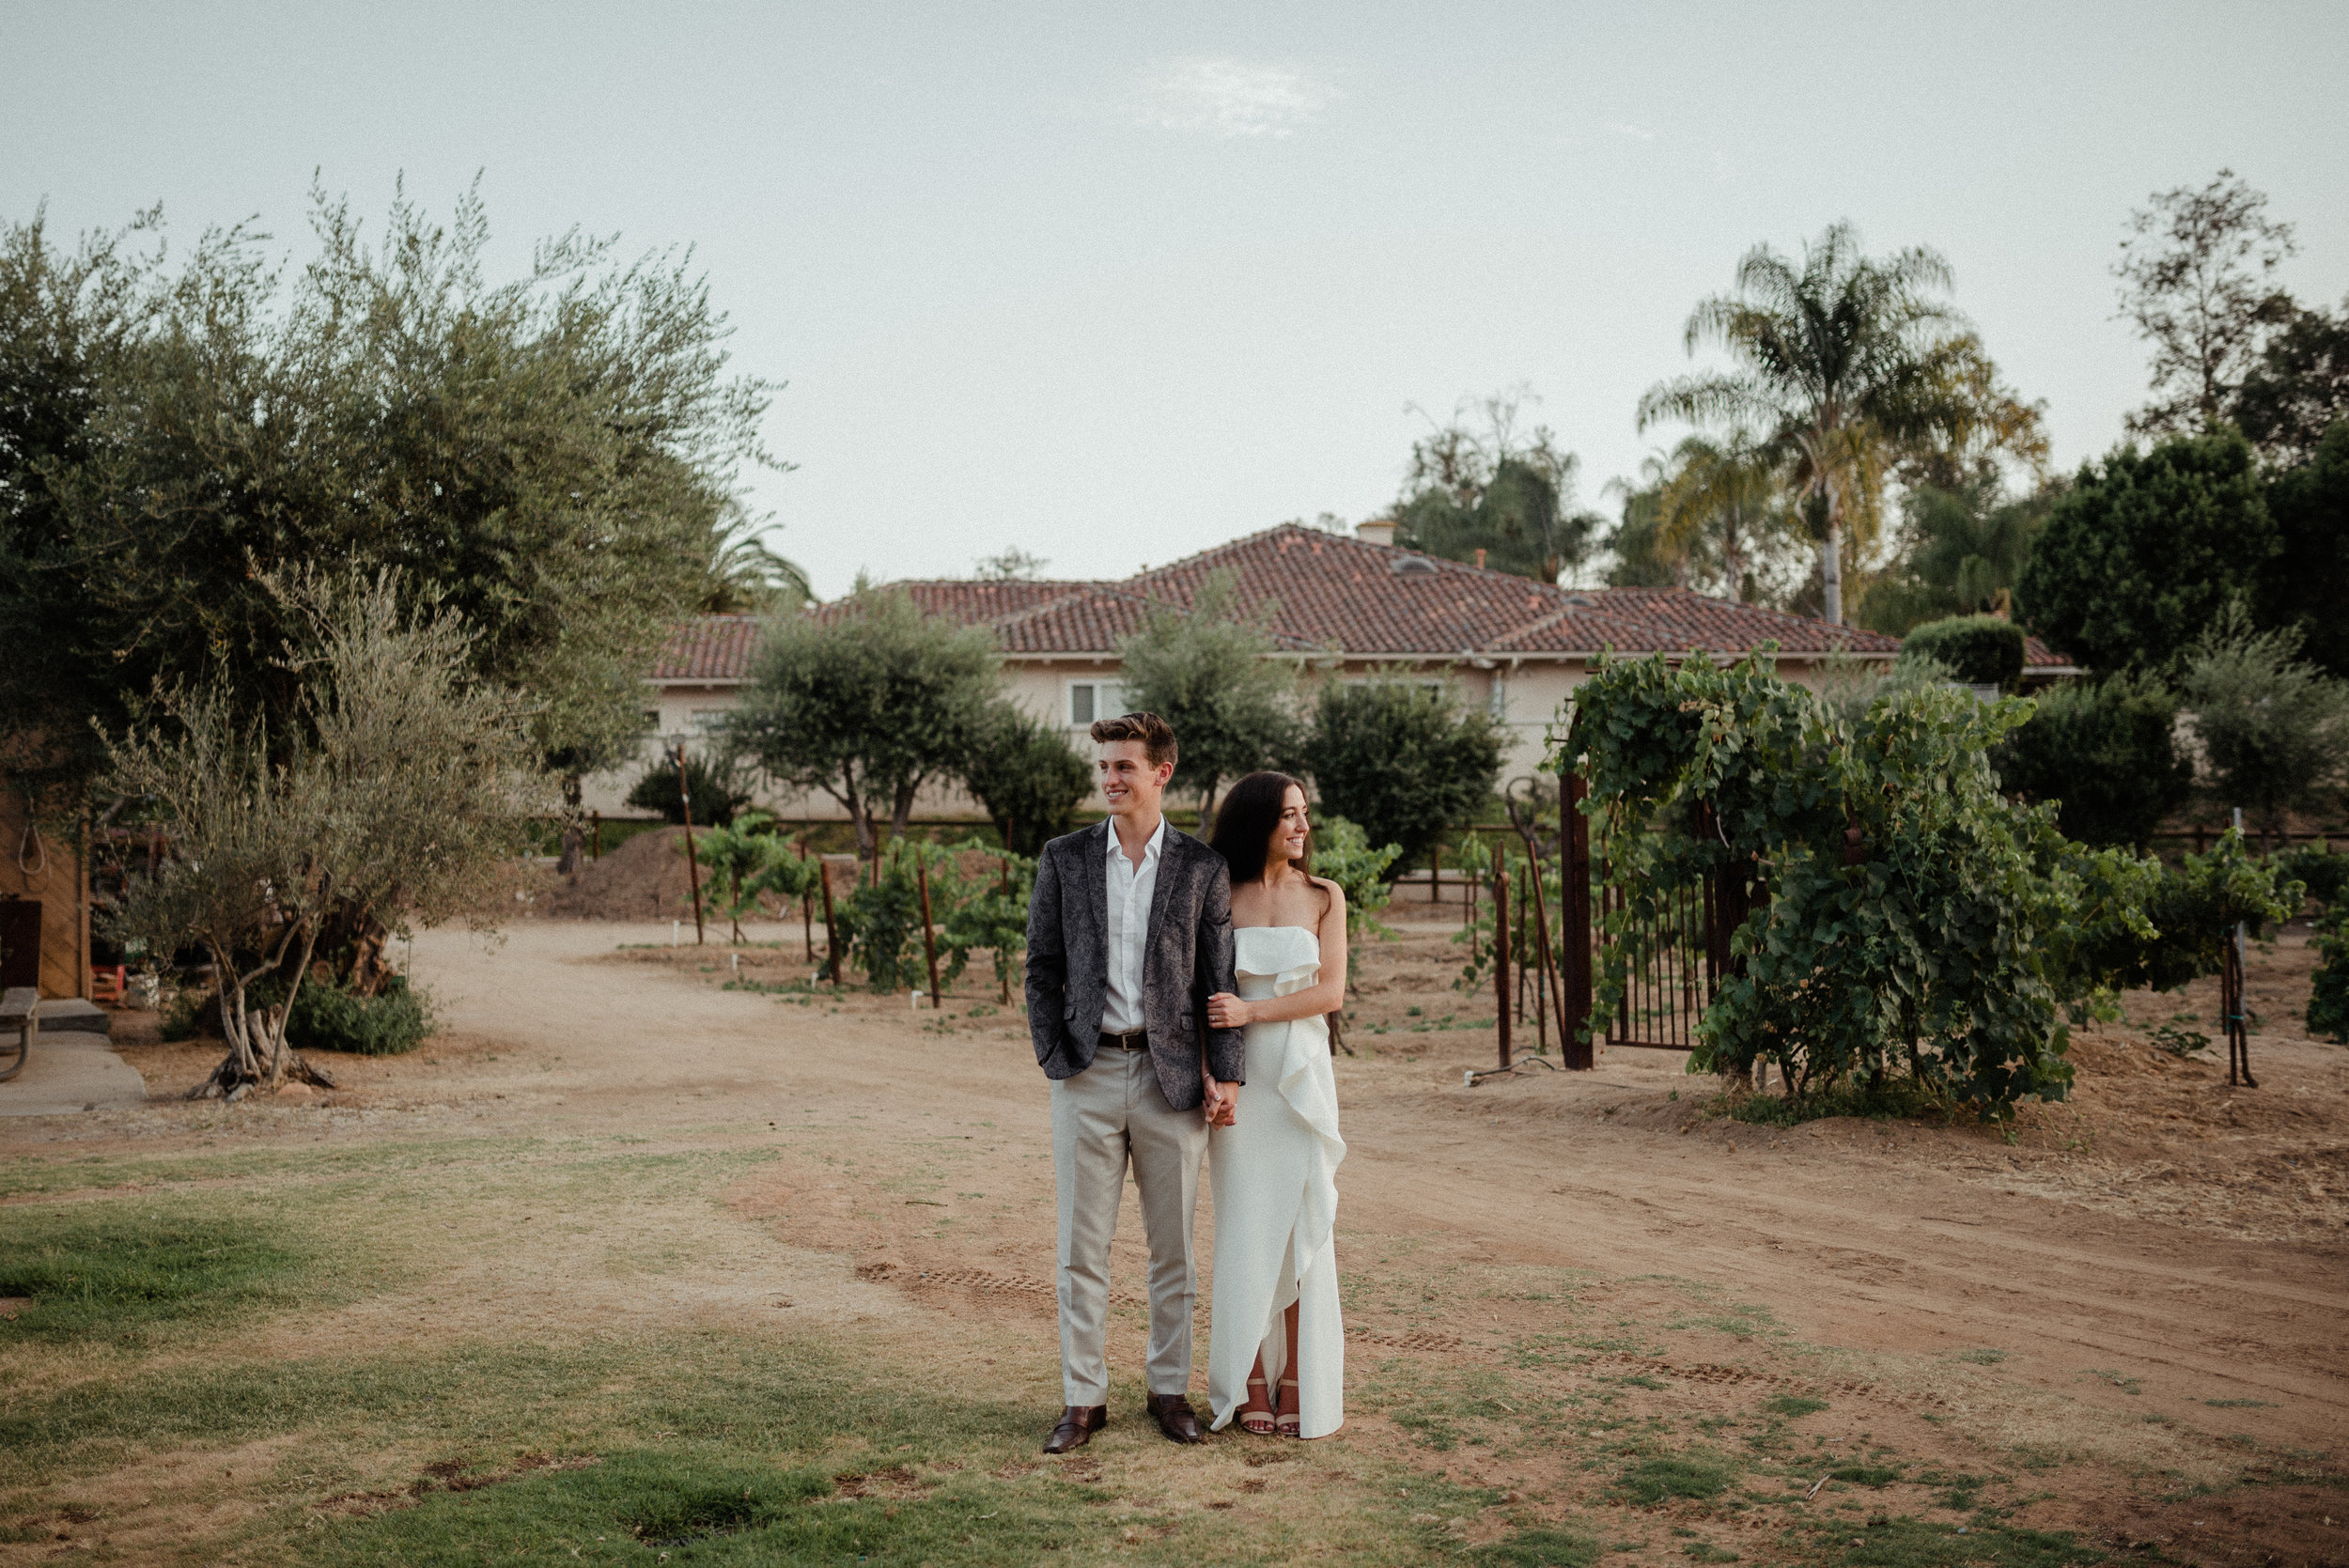 SanDiego-California-Bernardo-Winery-WashingtonDC-wedding-photographer-earthy-desert-wedding-LizRachelPhoto_0010